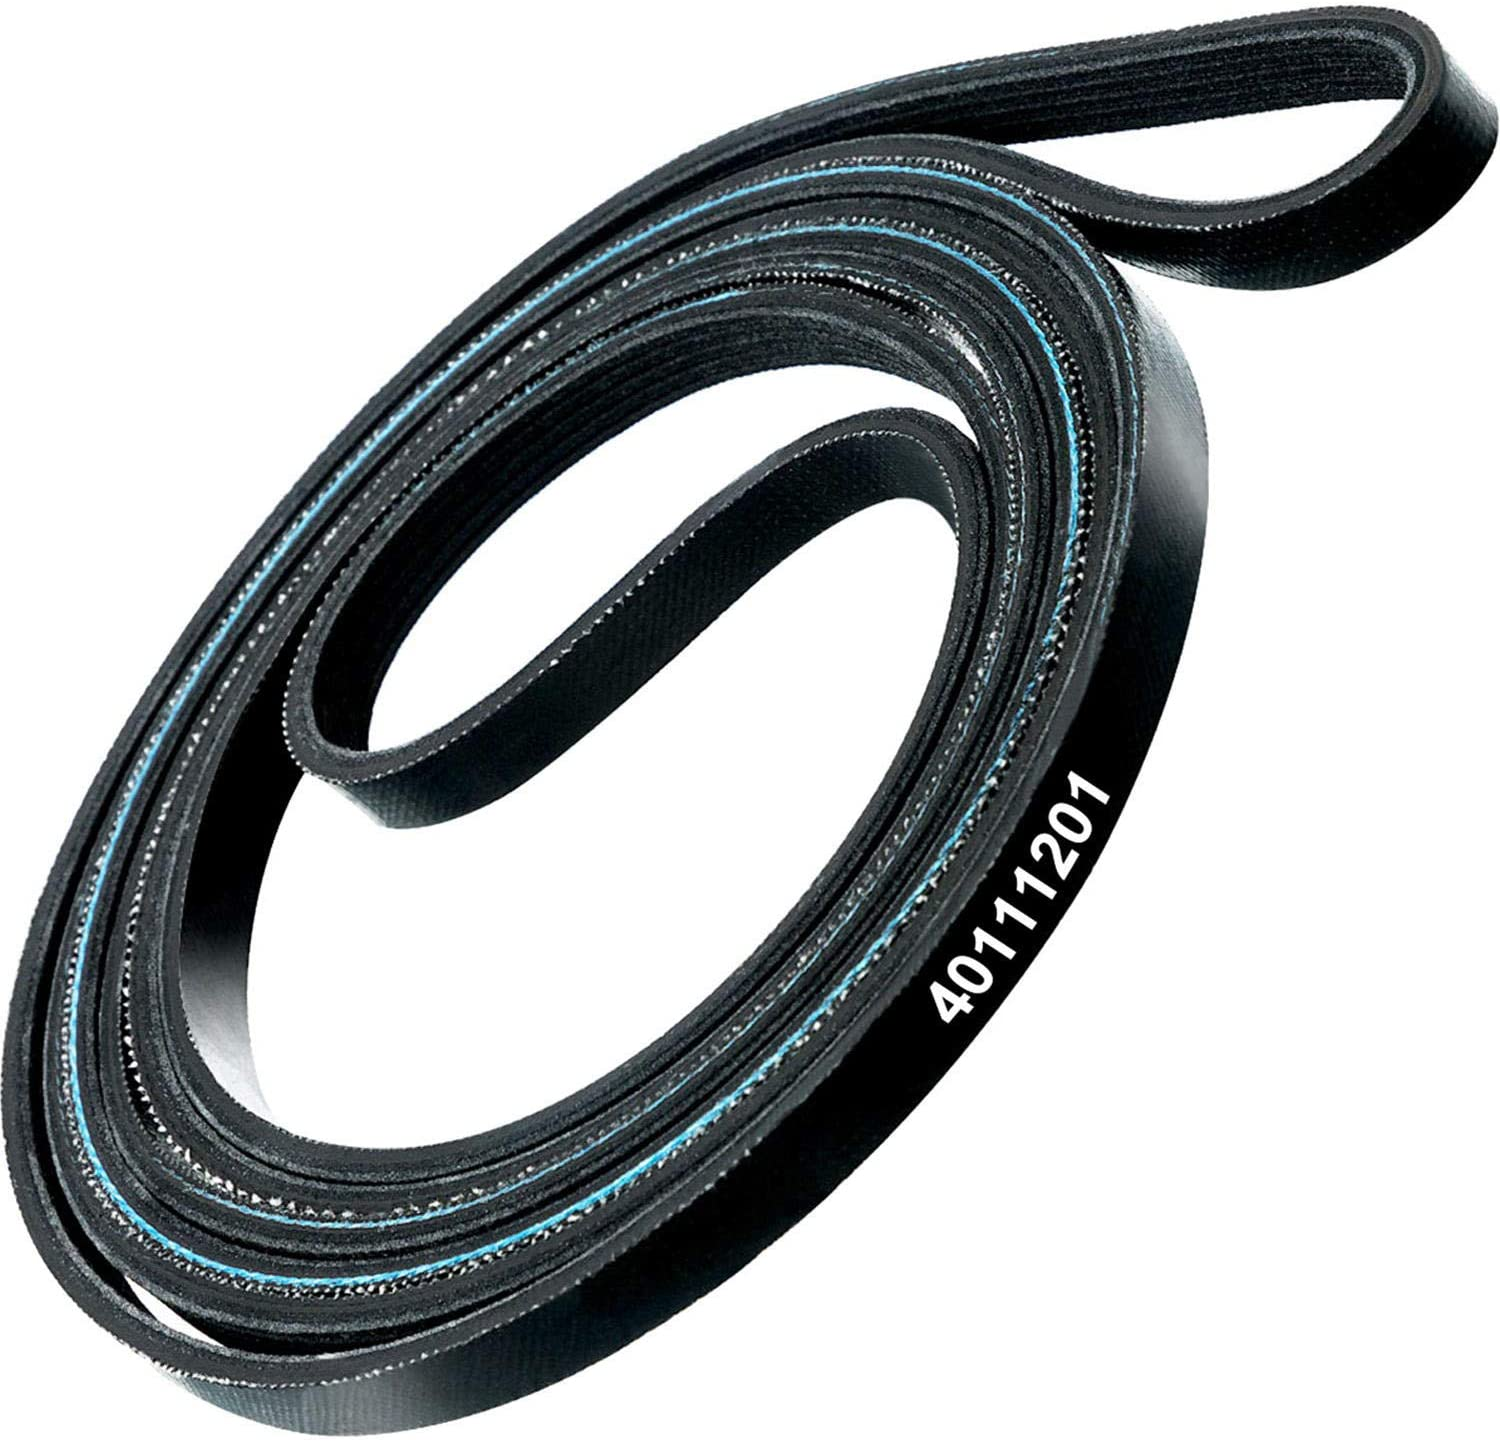 40111201 Dryer Drum Belt Compatible with Maytag, Amana, Admiral Dryers, Replace for WP40111201, AP6009126, 14218936, 40051501